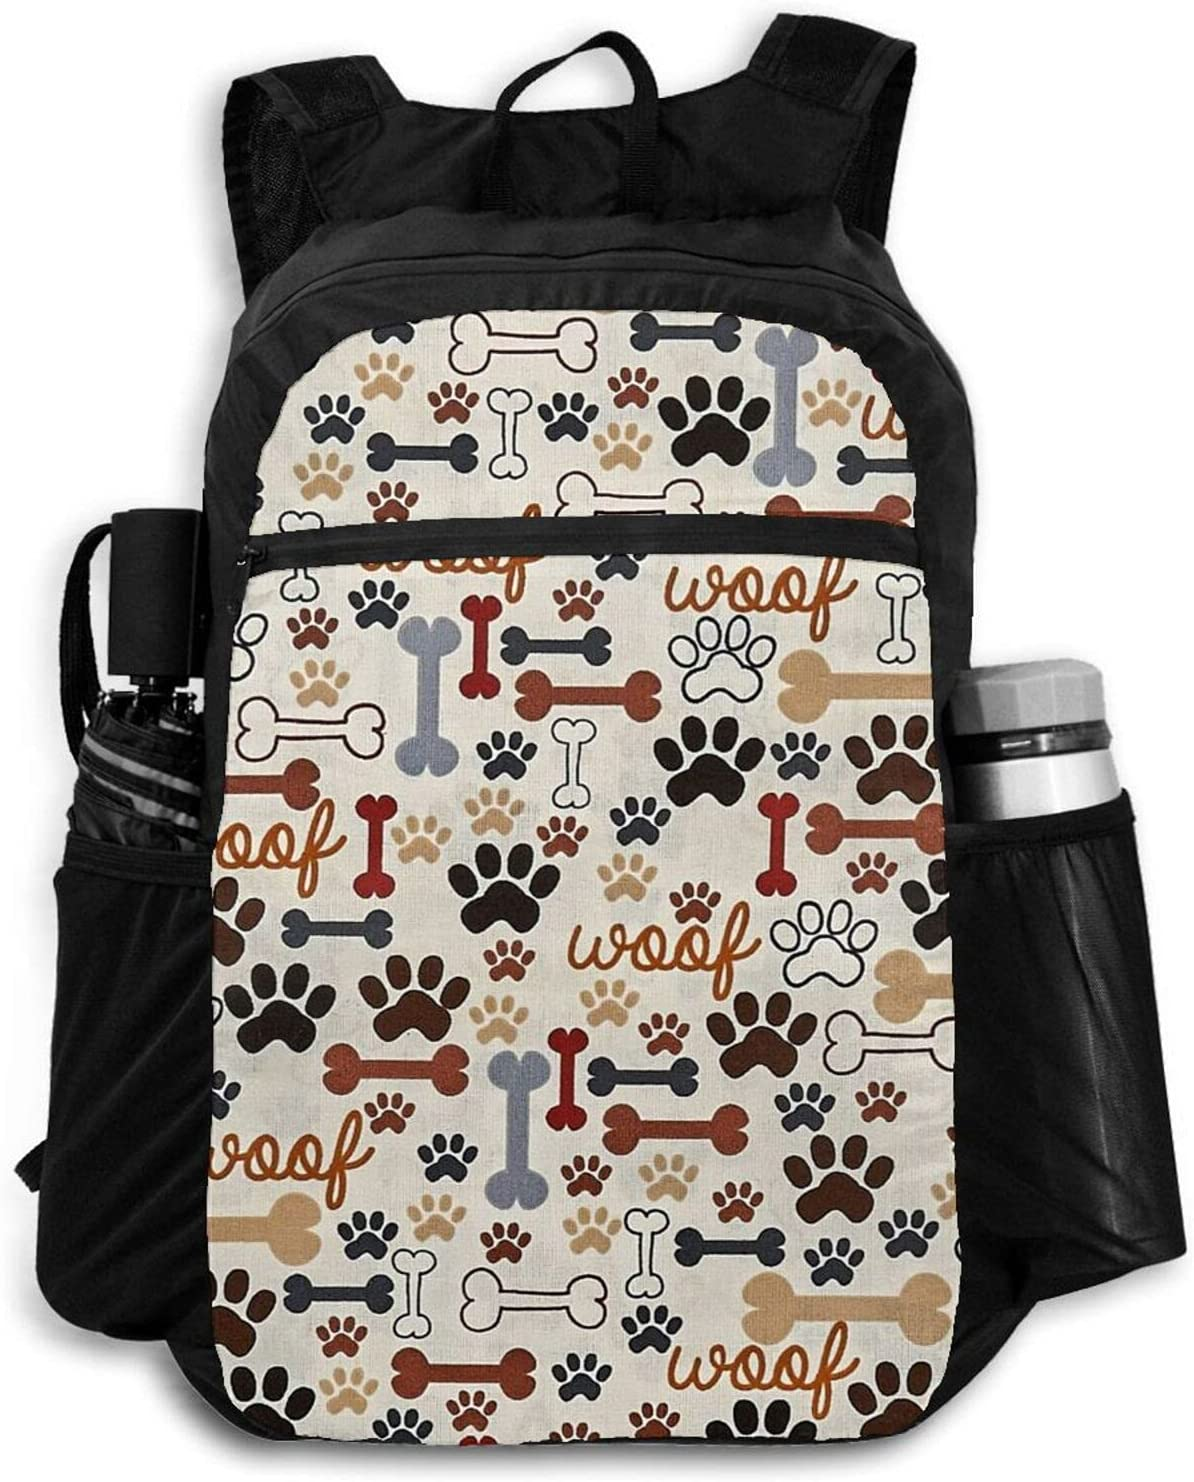 Zolama Dog Max 63% OFF Bones Paw Free shipping on posting reviews Backpacks for Day Women Packable Cute Men